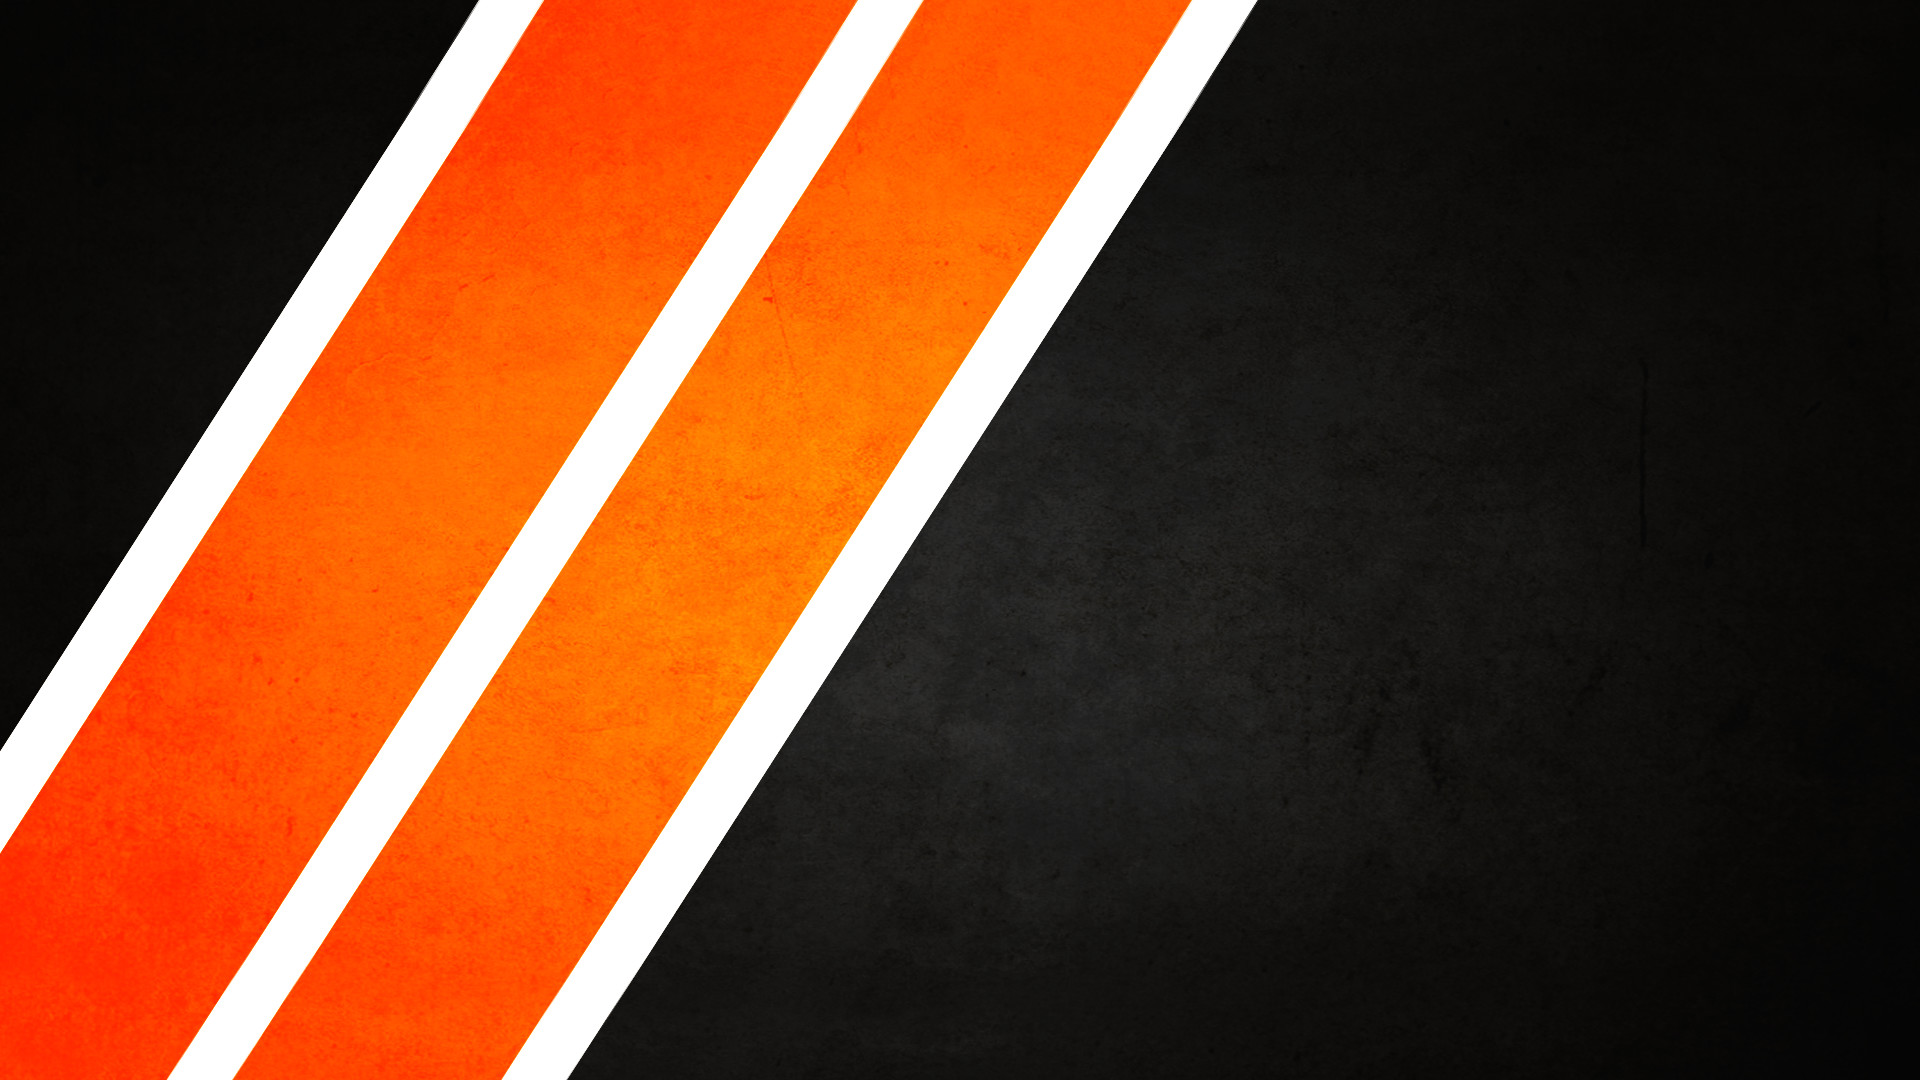 Abstract Orange Collection: .JWJW Abstract Orange Wallpapers